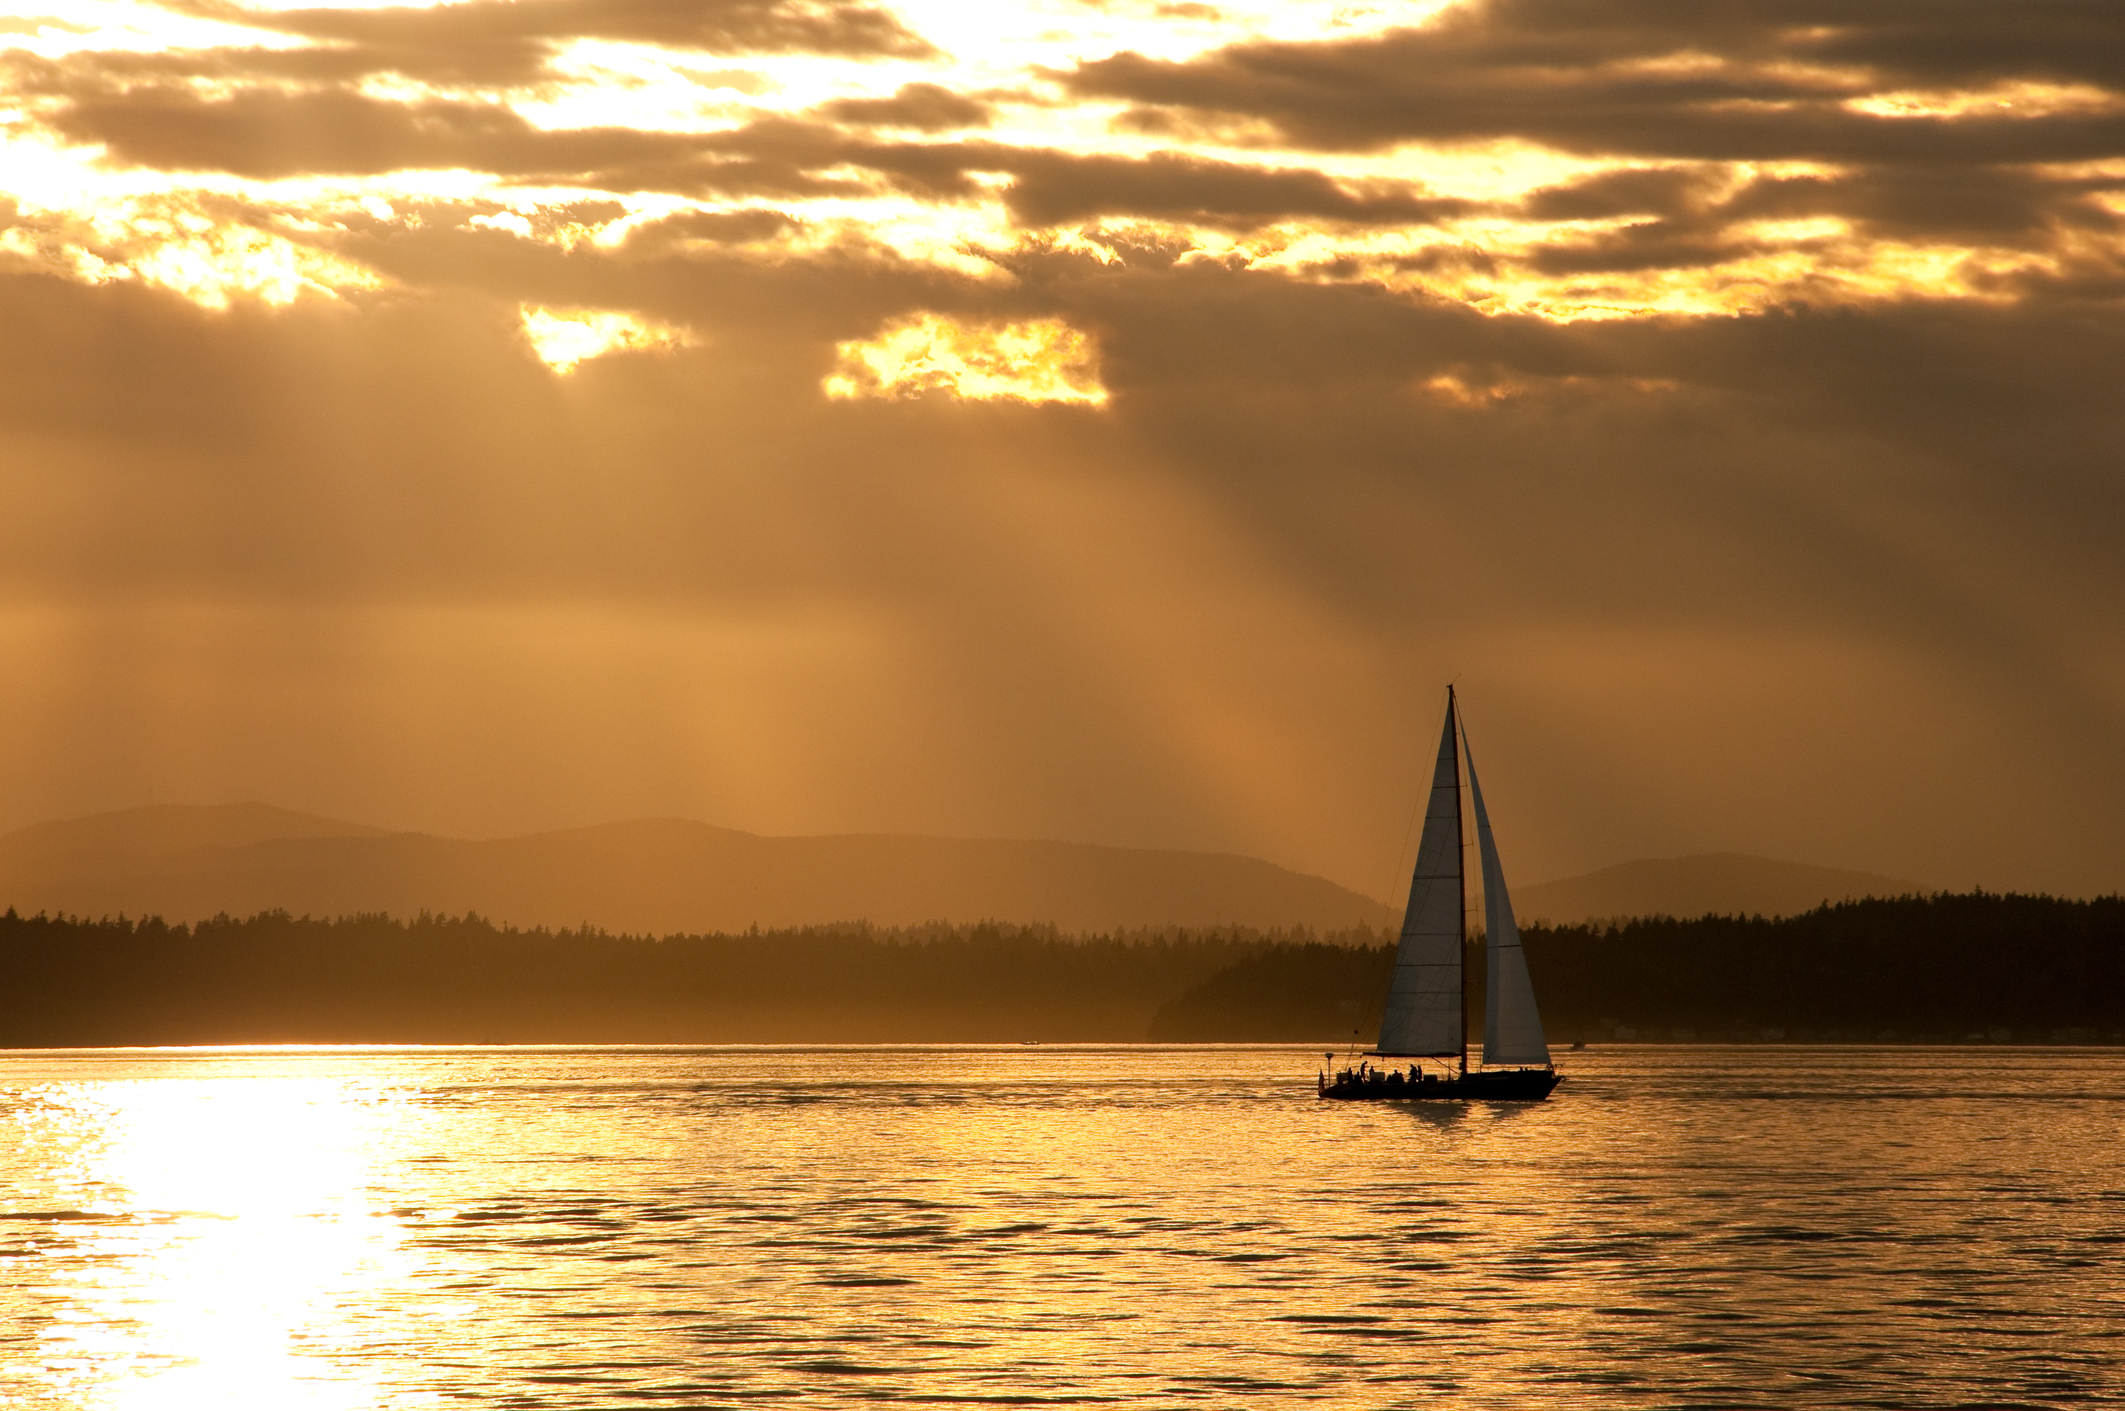 Let's Go Sailing   Sailing & Boat Rides from Seattle's